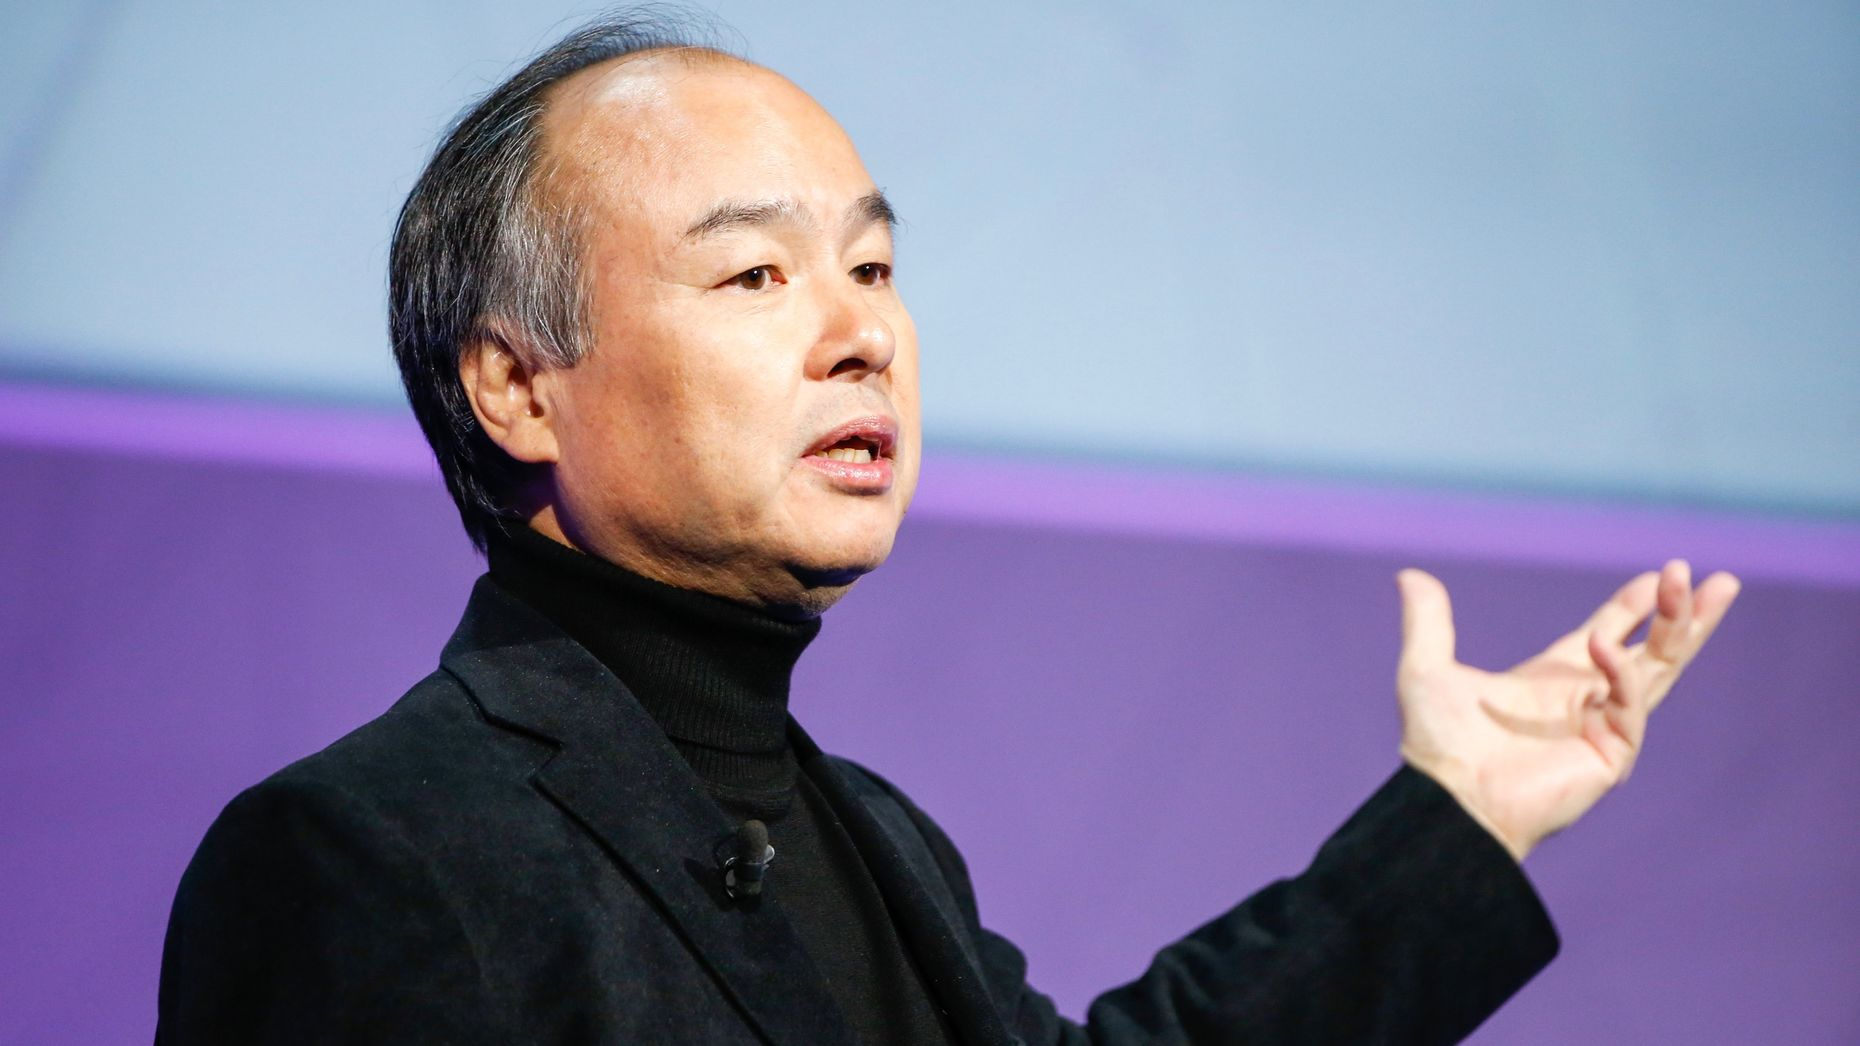 SoftBank Chairman and CEO Masayoshi Son. Photo by Bloomberg.